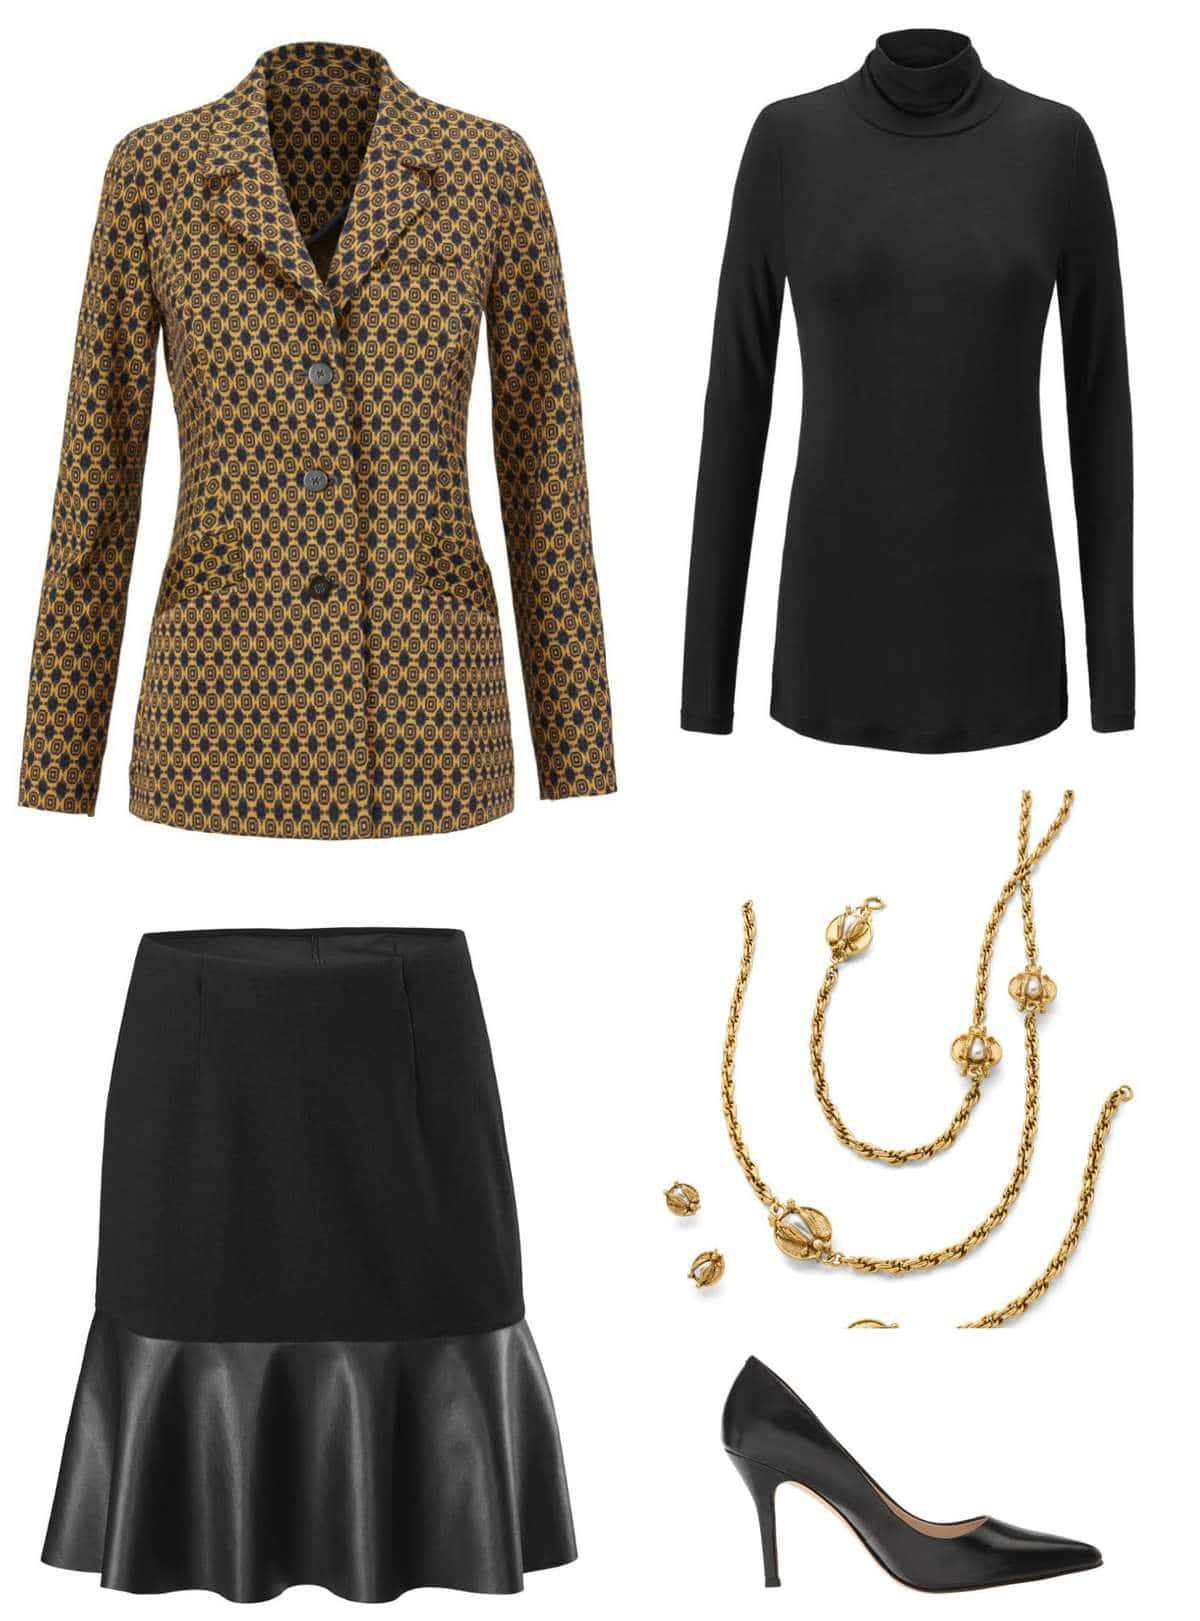 The cabi Standout Jacket styled for work with the cabi Flip Skirt, Layer Turtleneck, Buzz Necklace and Earrings, and classic black pumps.